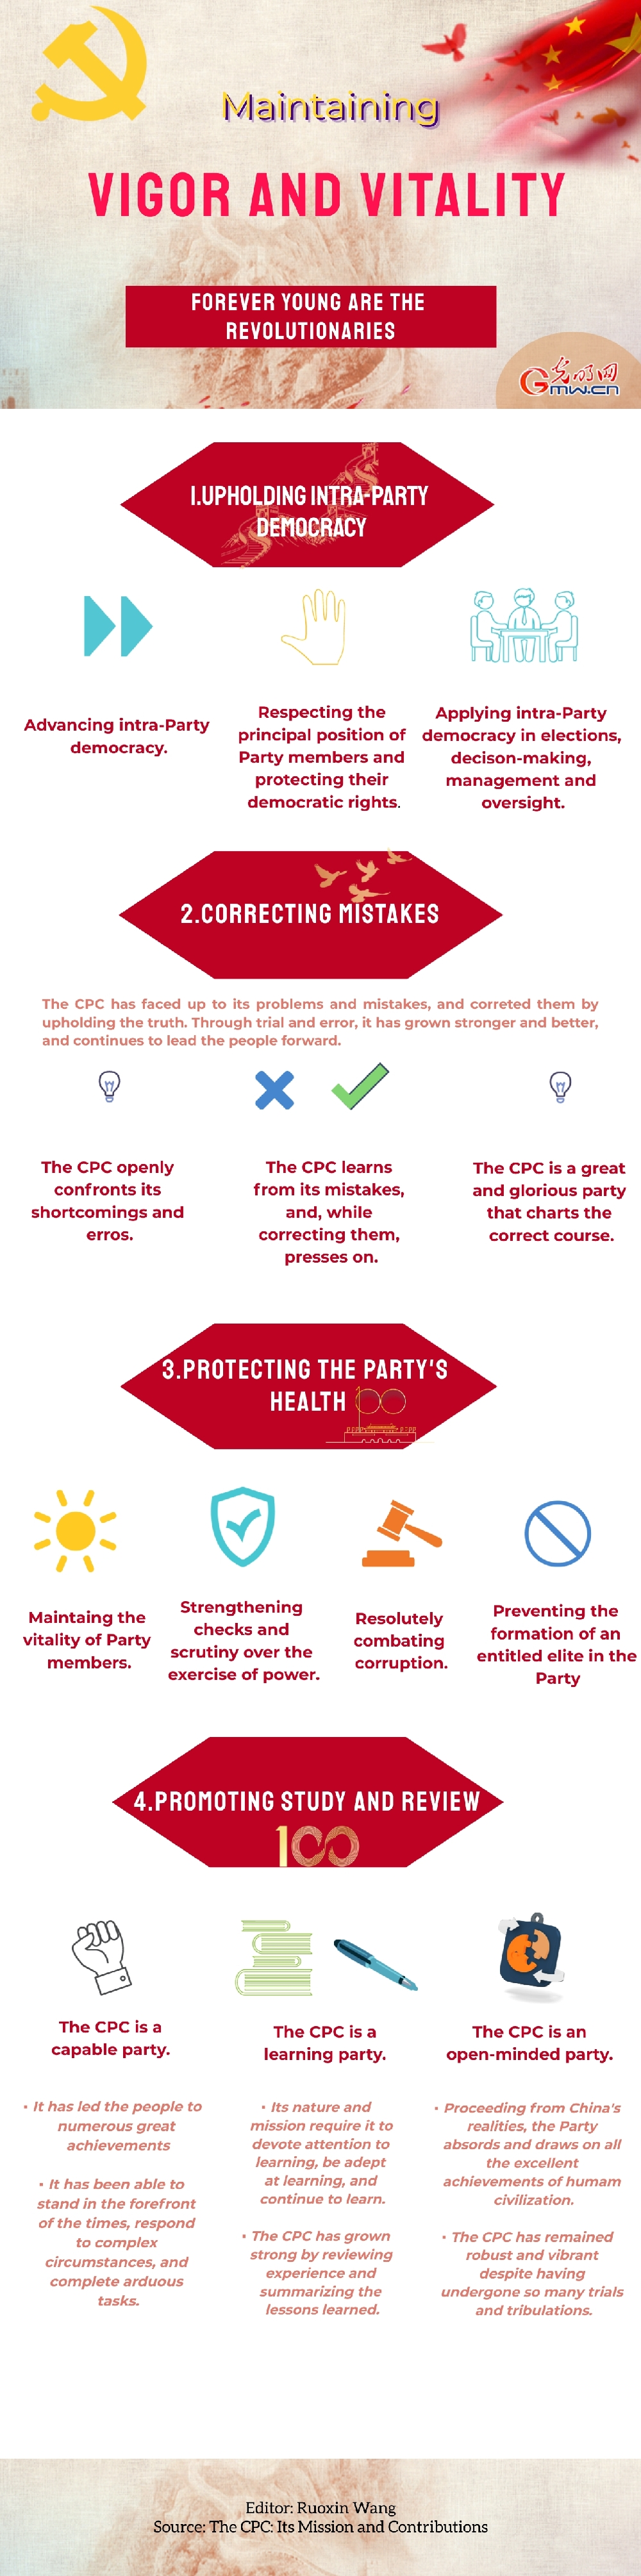 CPC's Mission and Contributions: How does the Party maintain vigor and vitality?